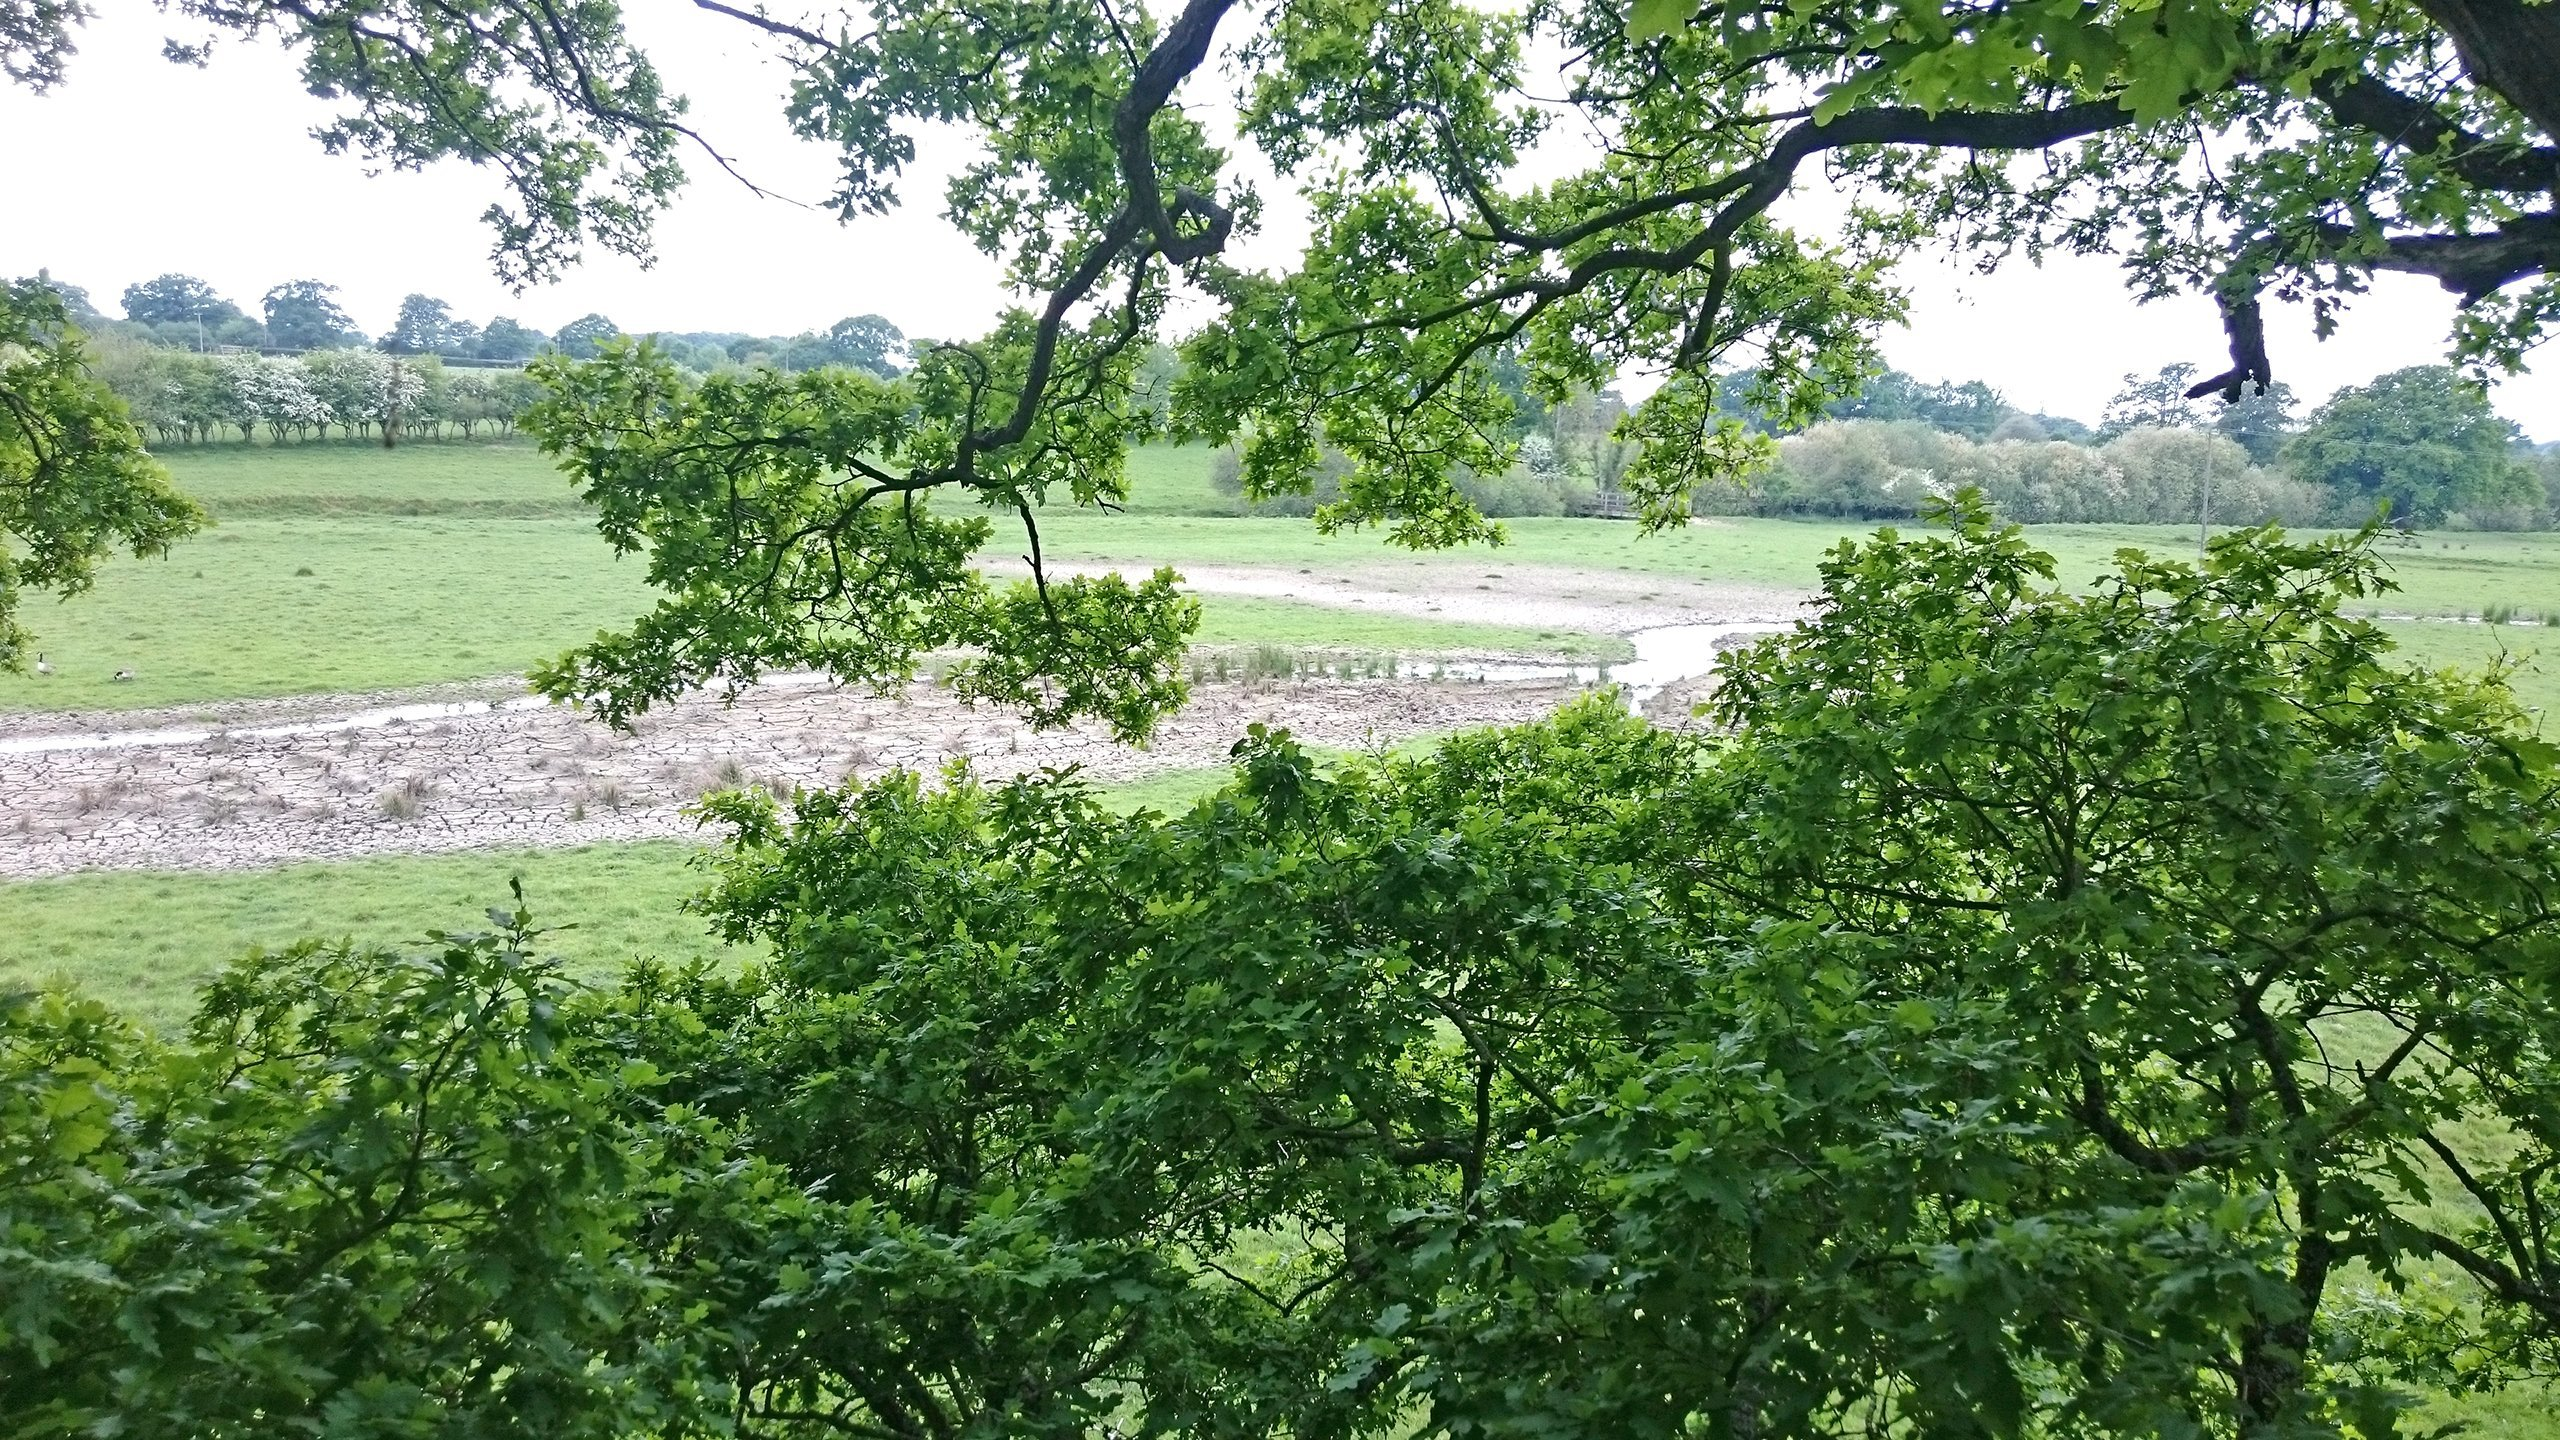 Knepp Wildland - River viewed from a platfrom in the oak tree canopy